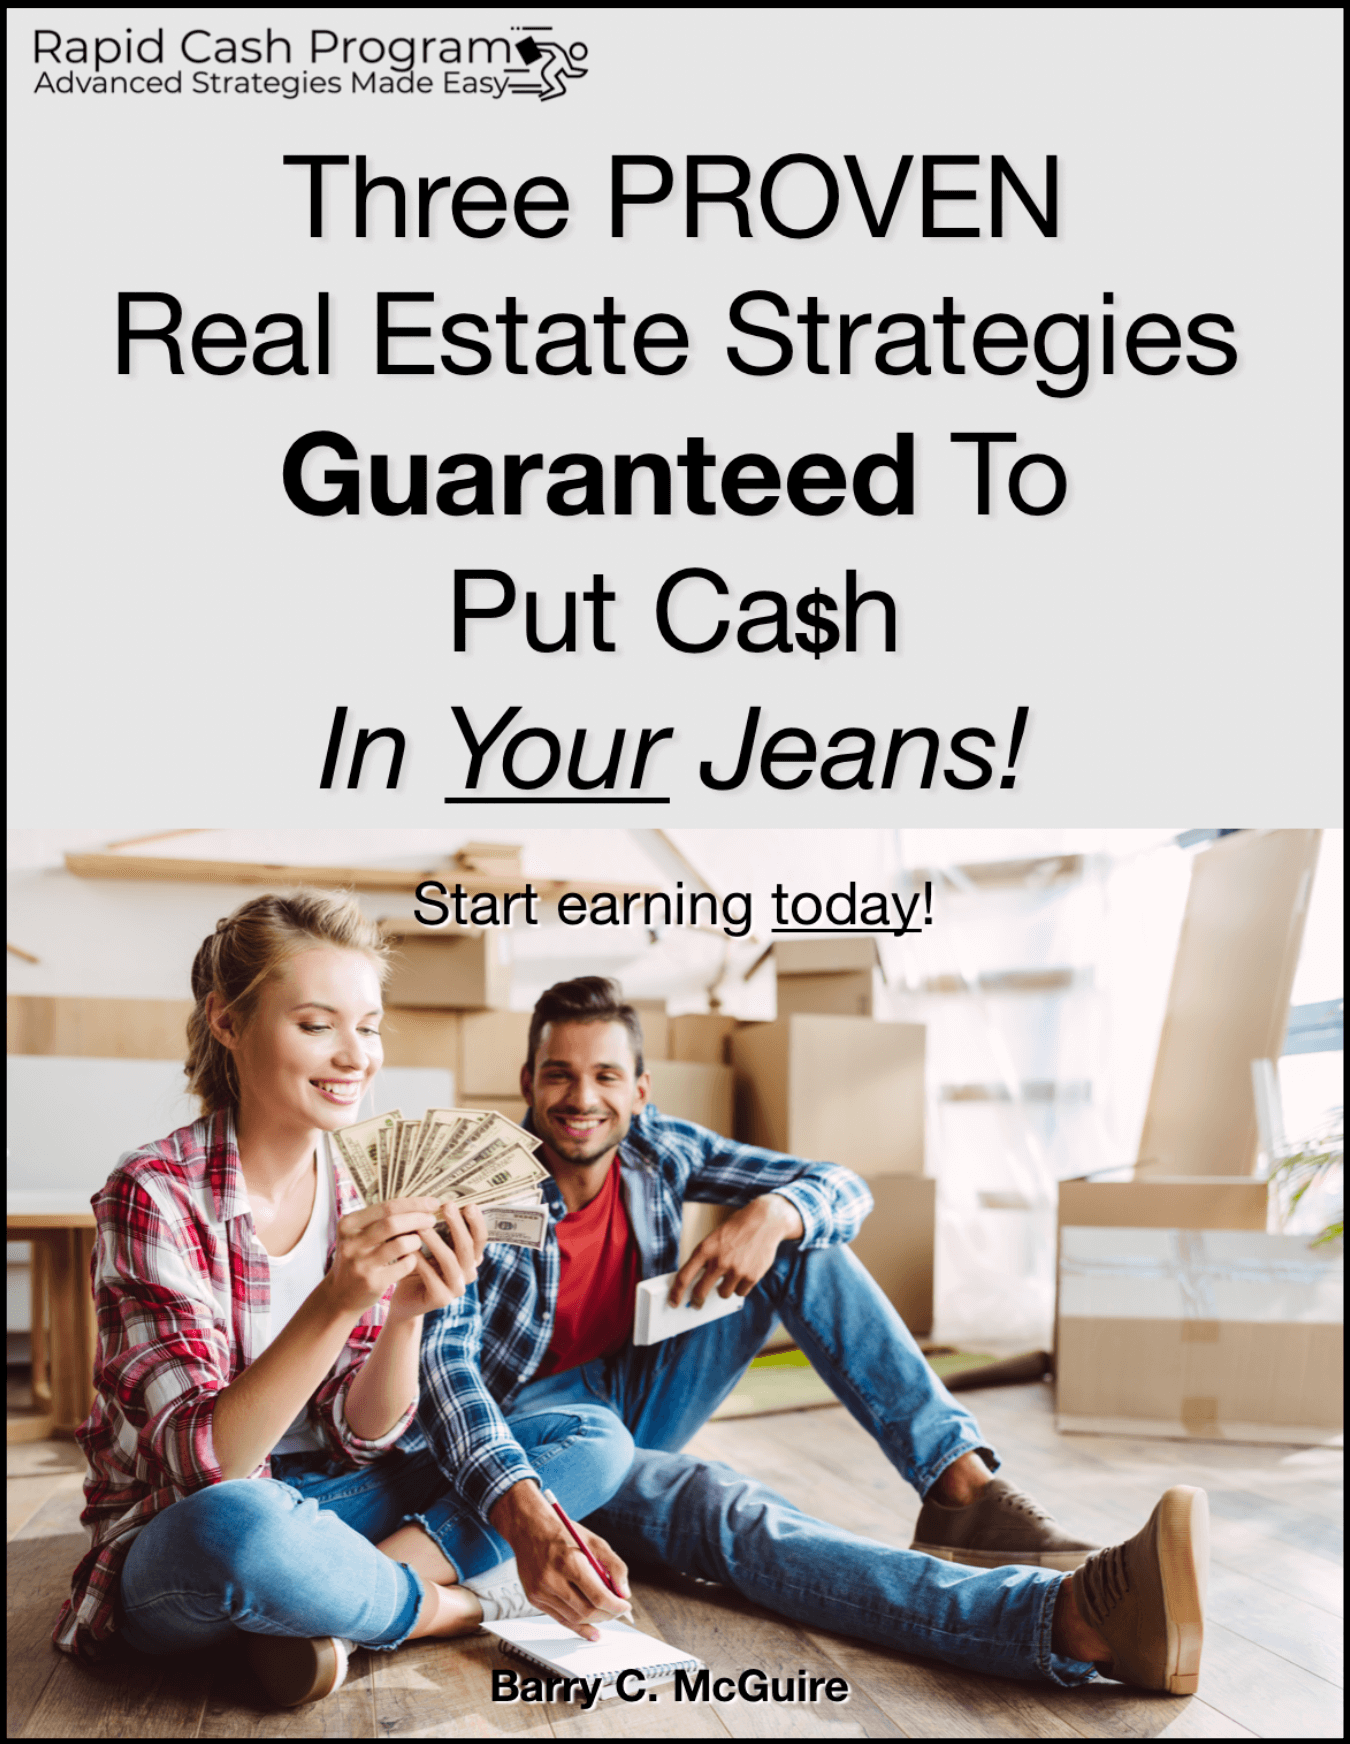 Rapid Cash - Three Proven Real Estate Strategies - In Your Jeans-4 TinyPNG.png